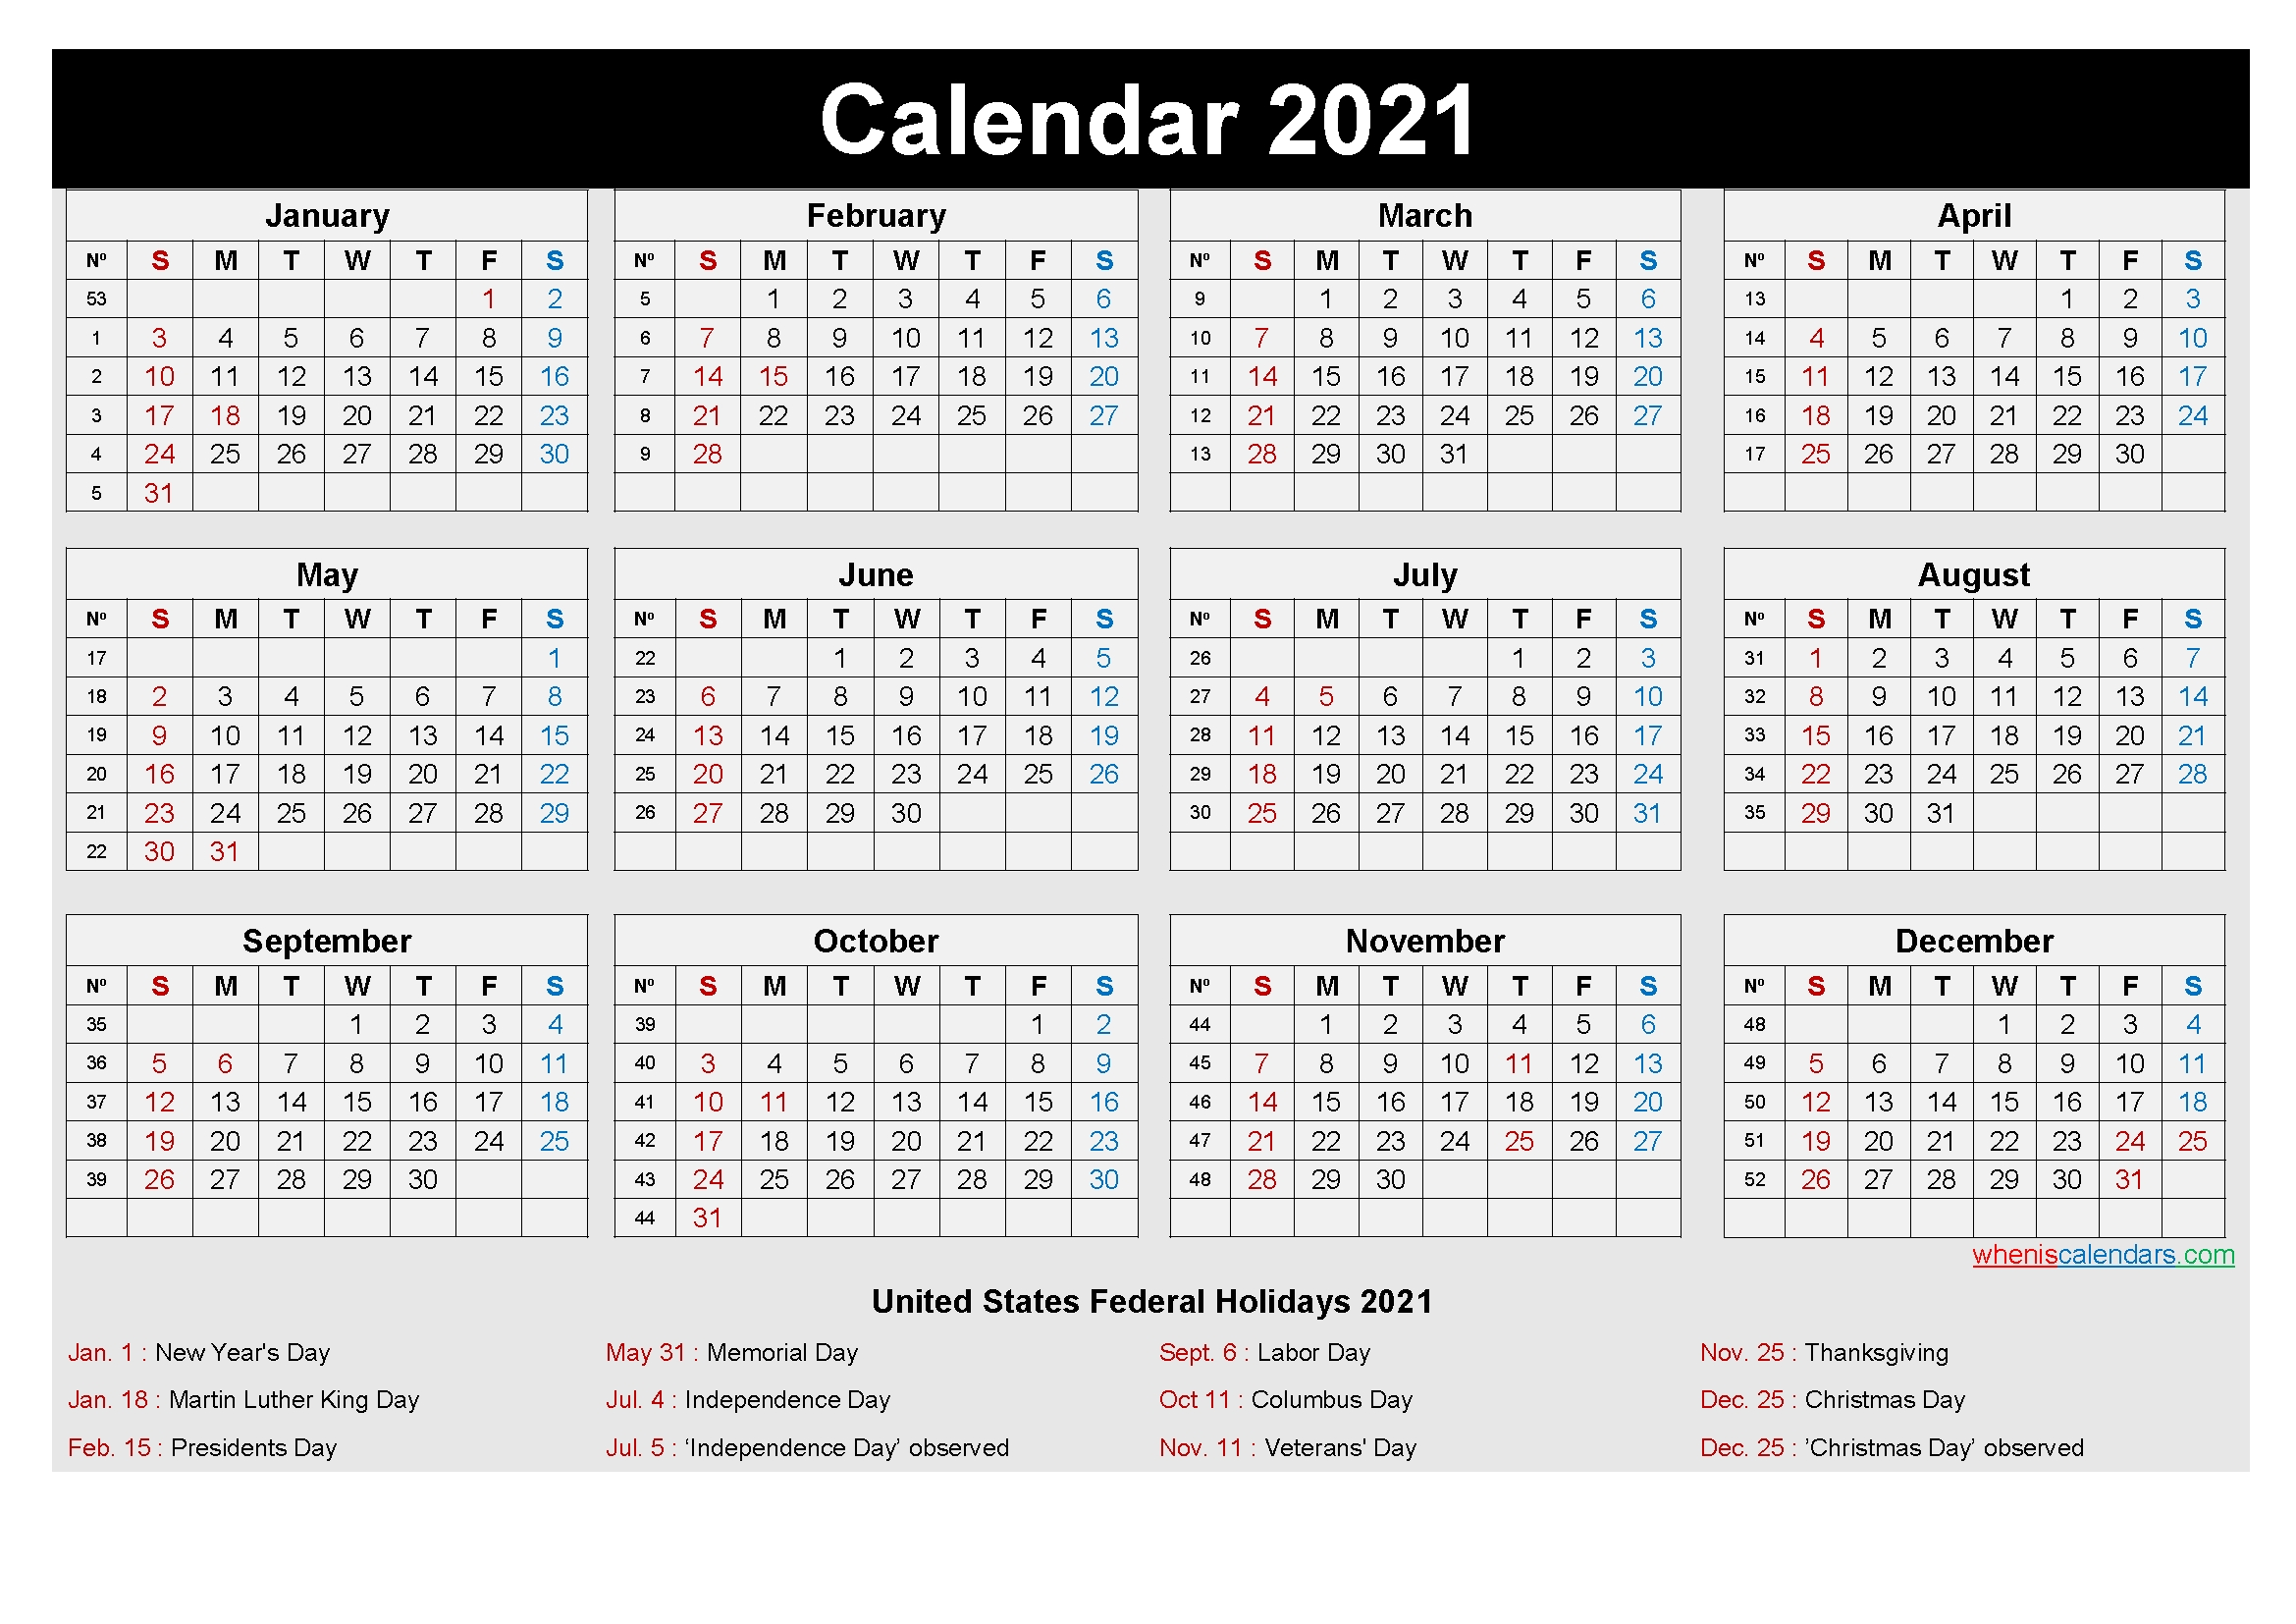 Free Printable Yearly 2021 Calendar With Holidays As Word, Pdf with regard to 2021 Calendar Printable Free Image